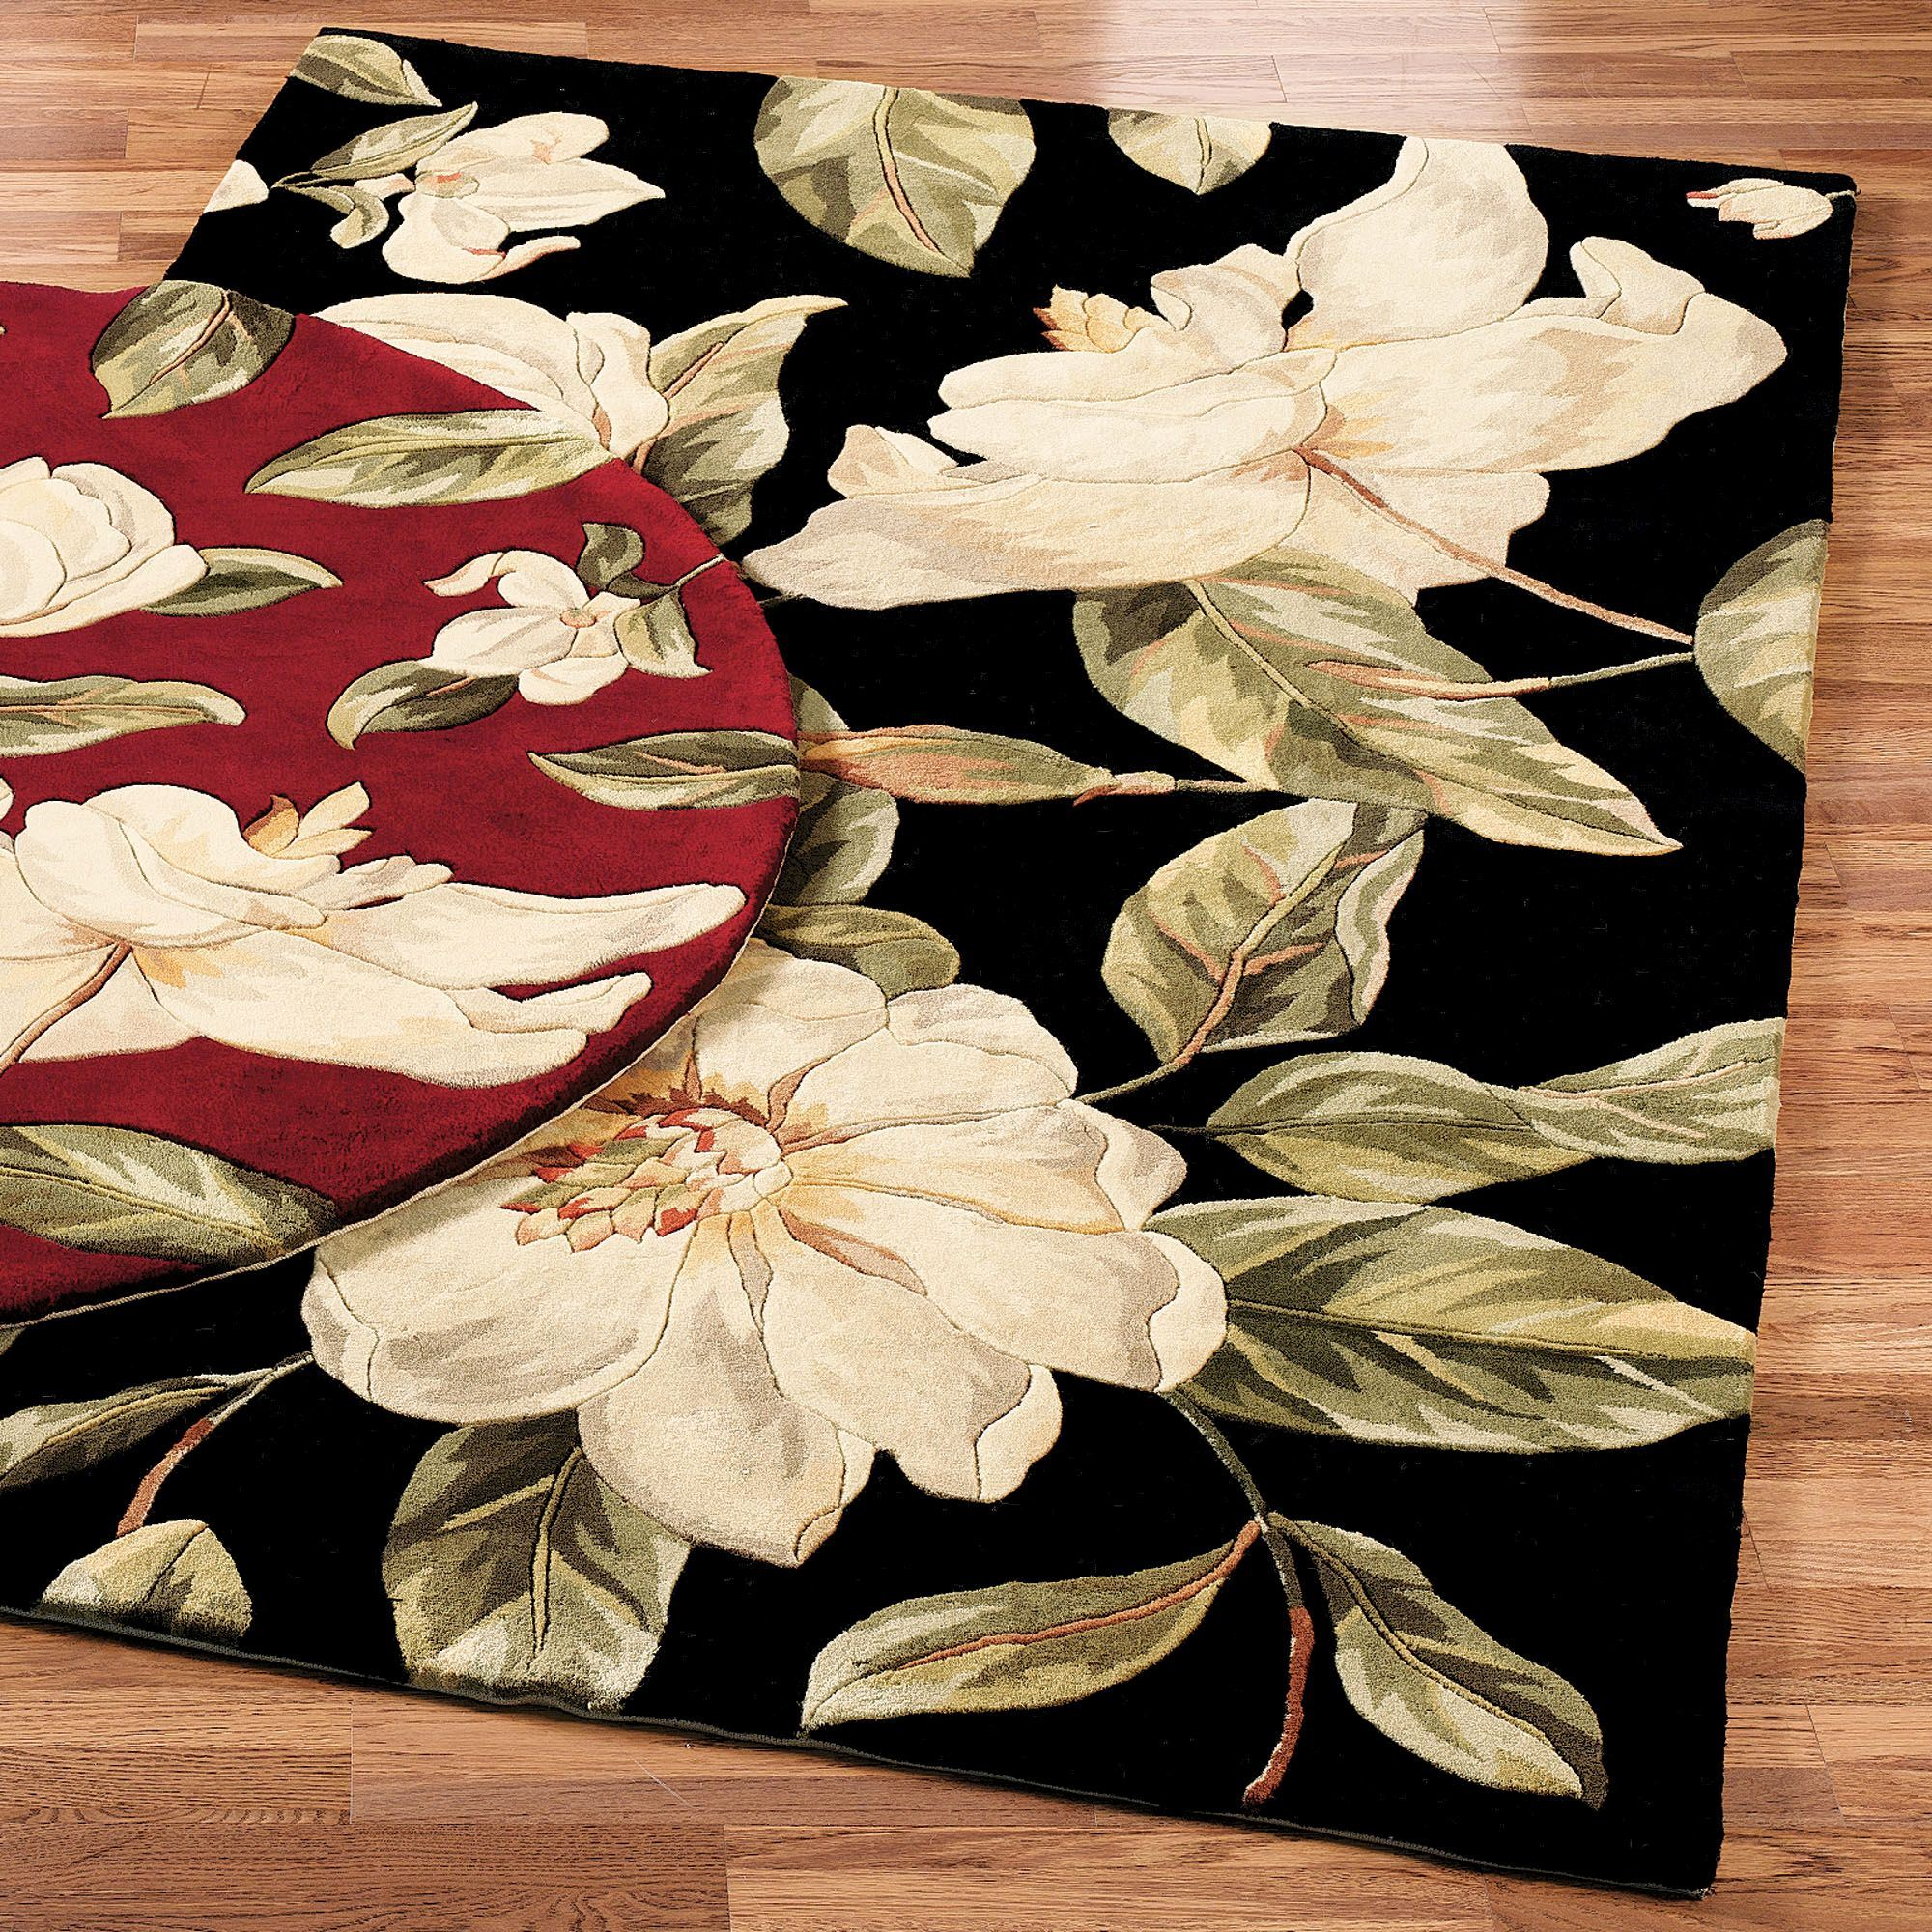 magnoliamagnolia joanna with size rug inspirations home full area photo gainesarea rugs the new weathered by of target flowers fox incredible flowersmagnolia line homes joannas farms magnolia